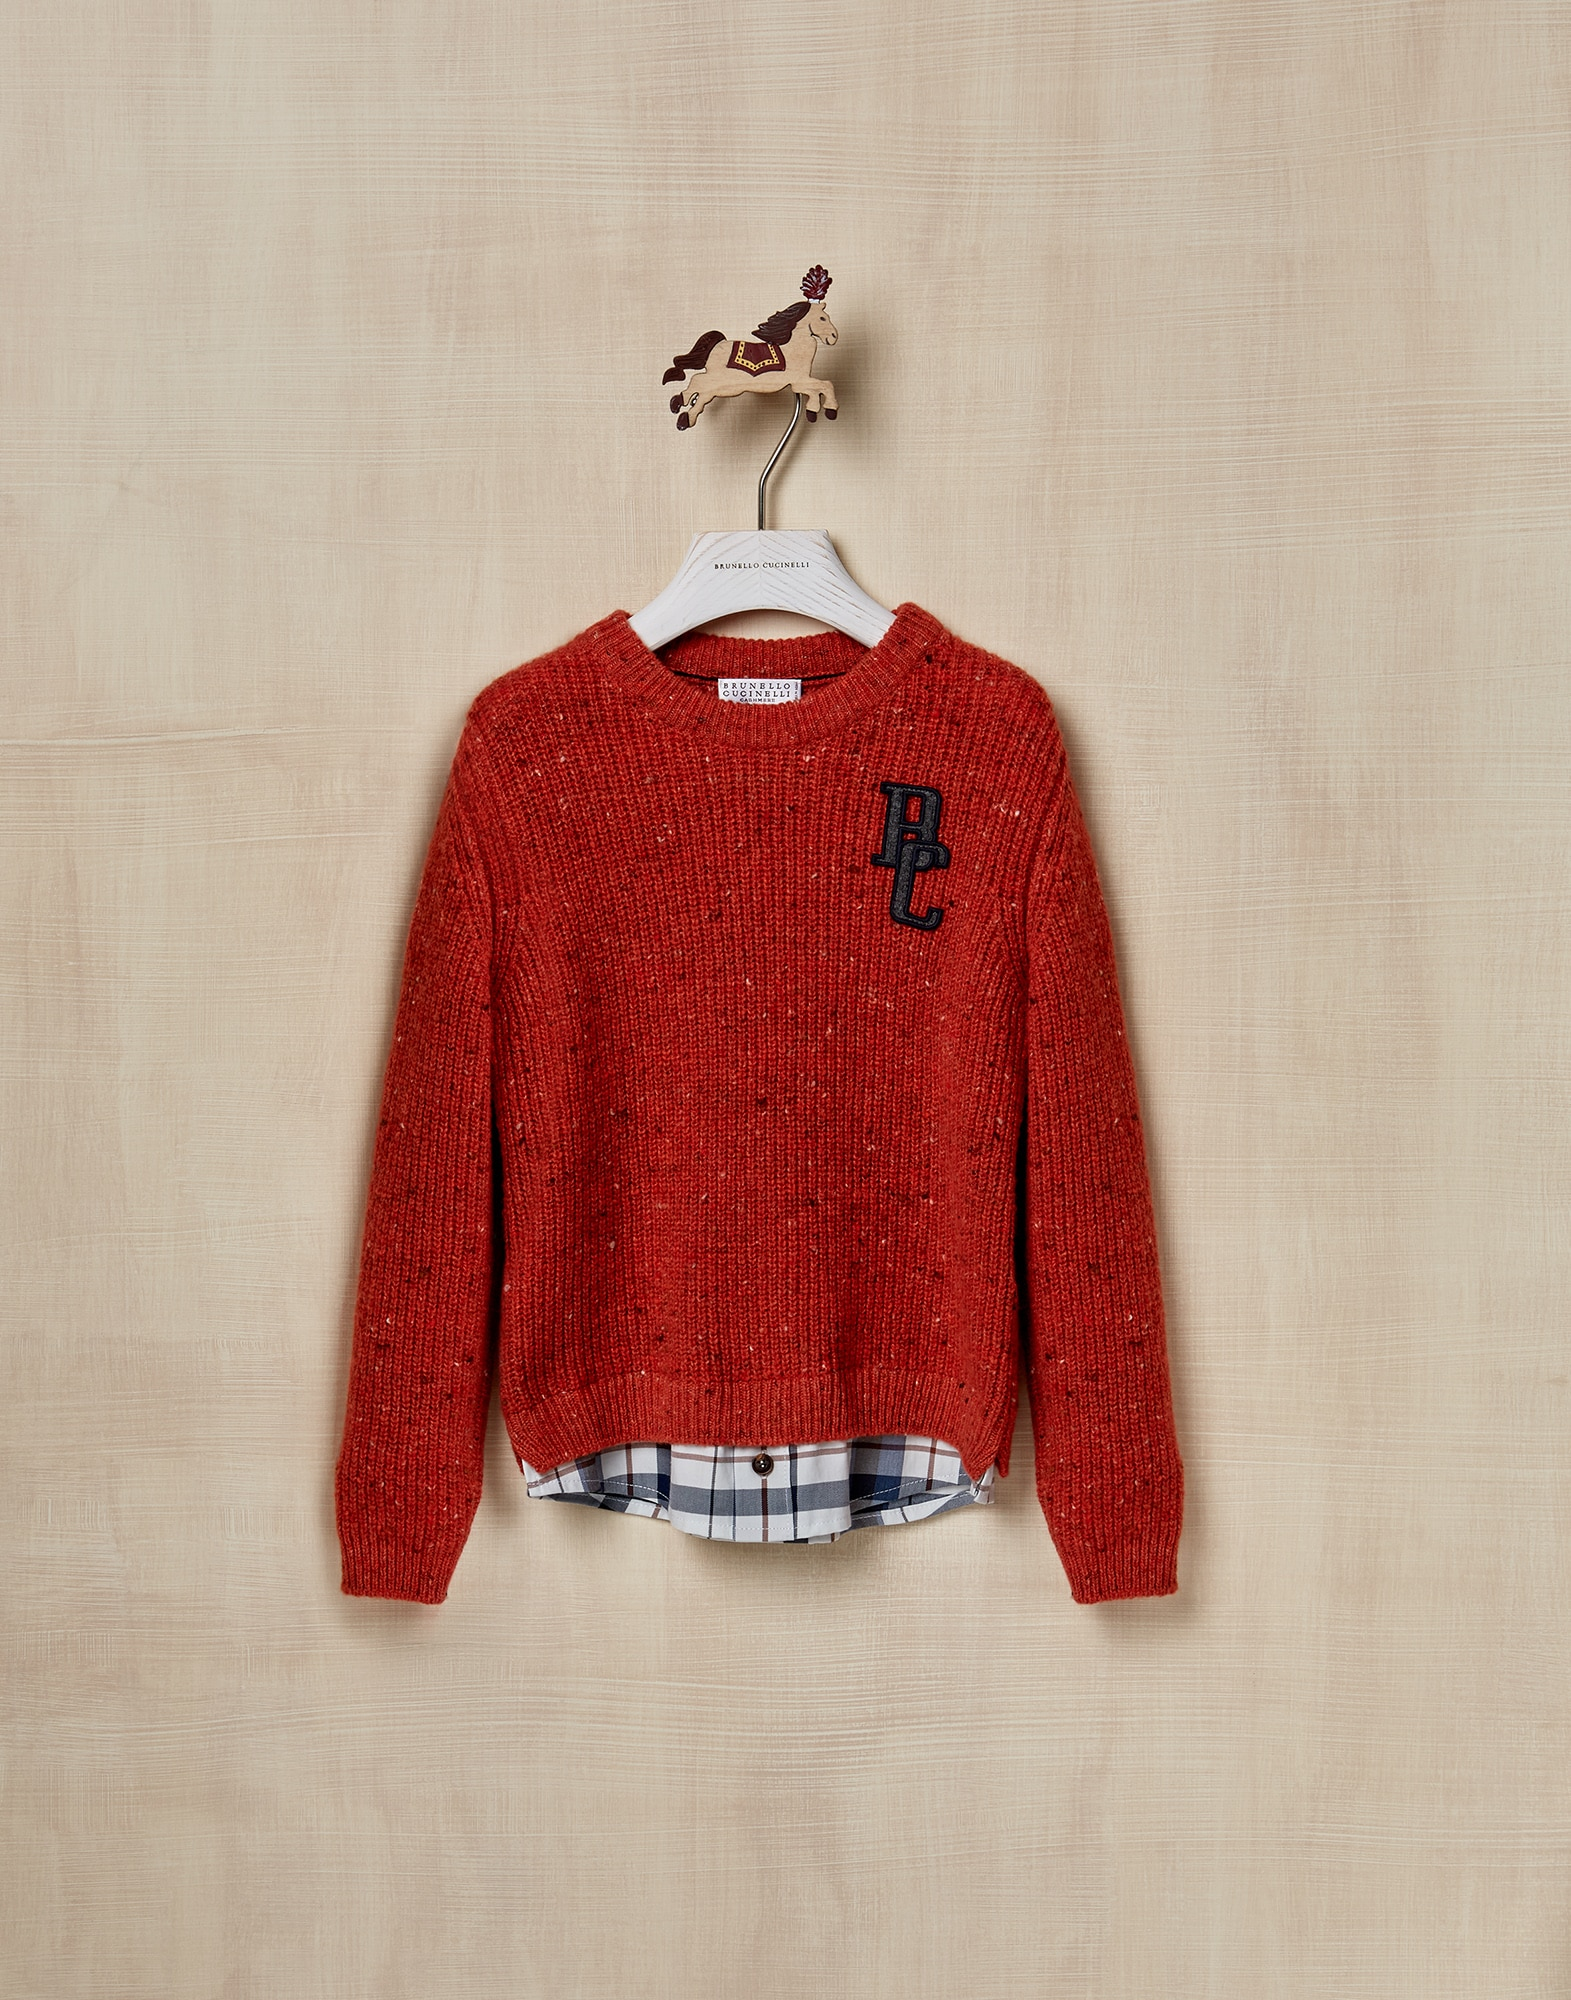 Crewneck Sweater Carrot Boy 1 - Brunello Cucinelli